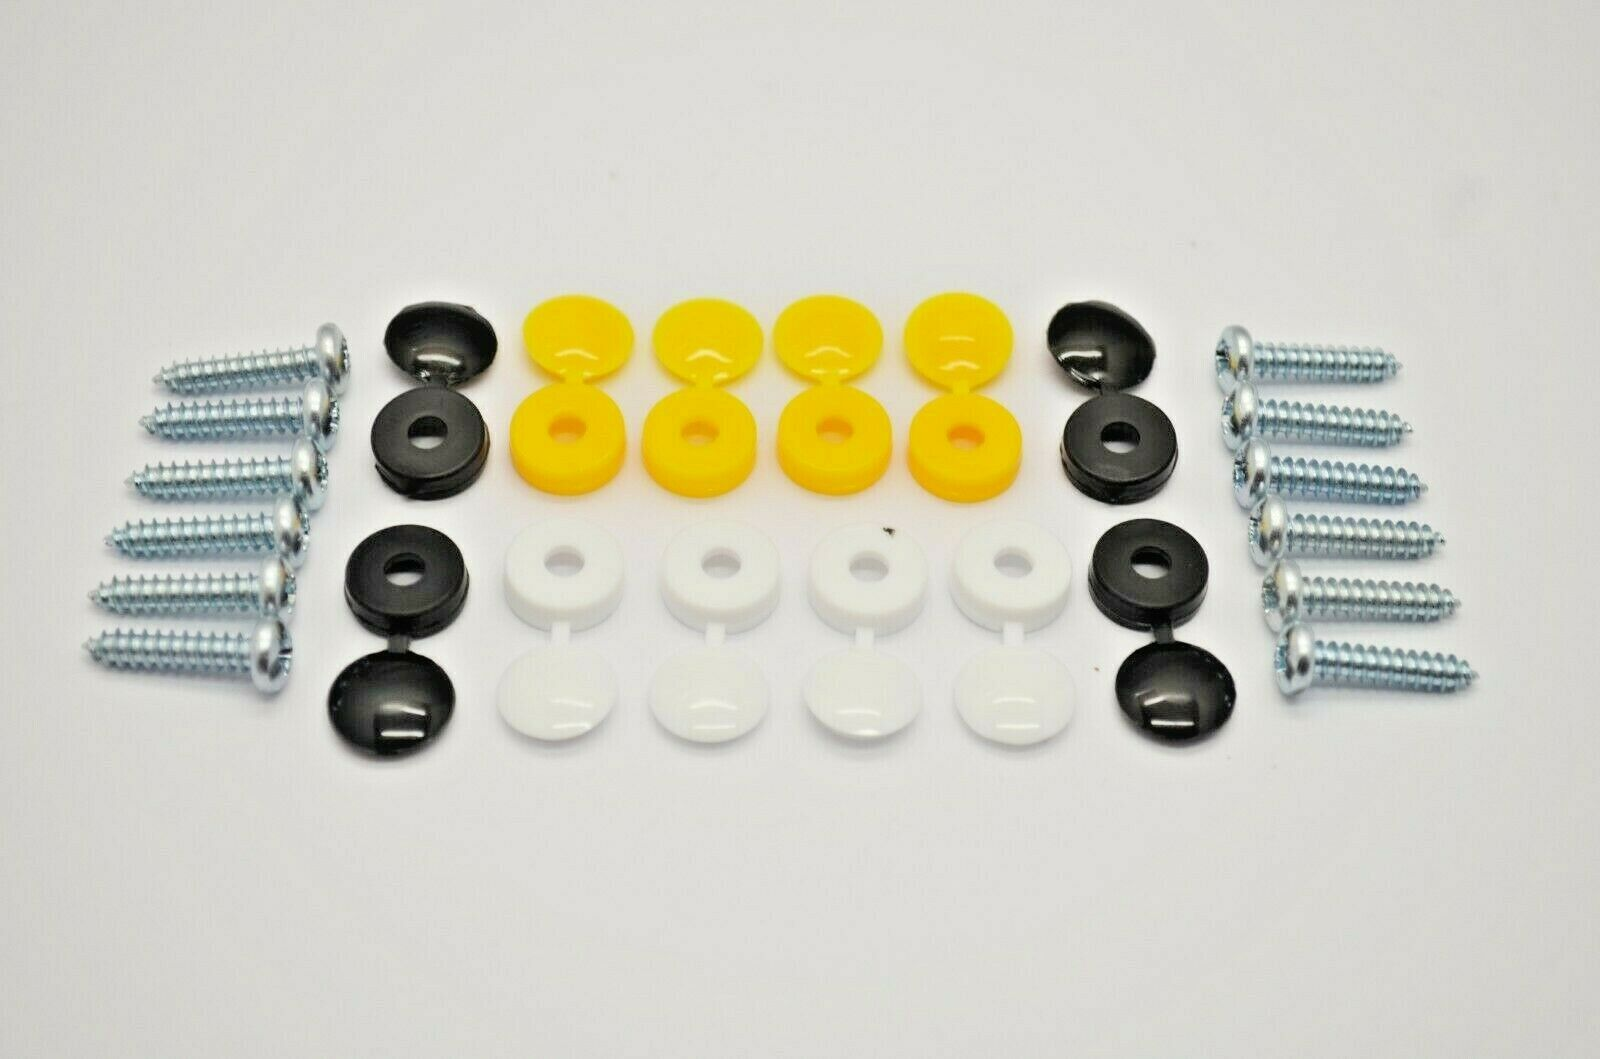 Car Number Plate Fixing Fitting Kit Screws And Caps 12 Black White Yellow 24 Pcs